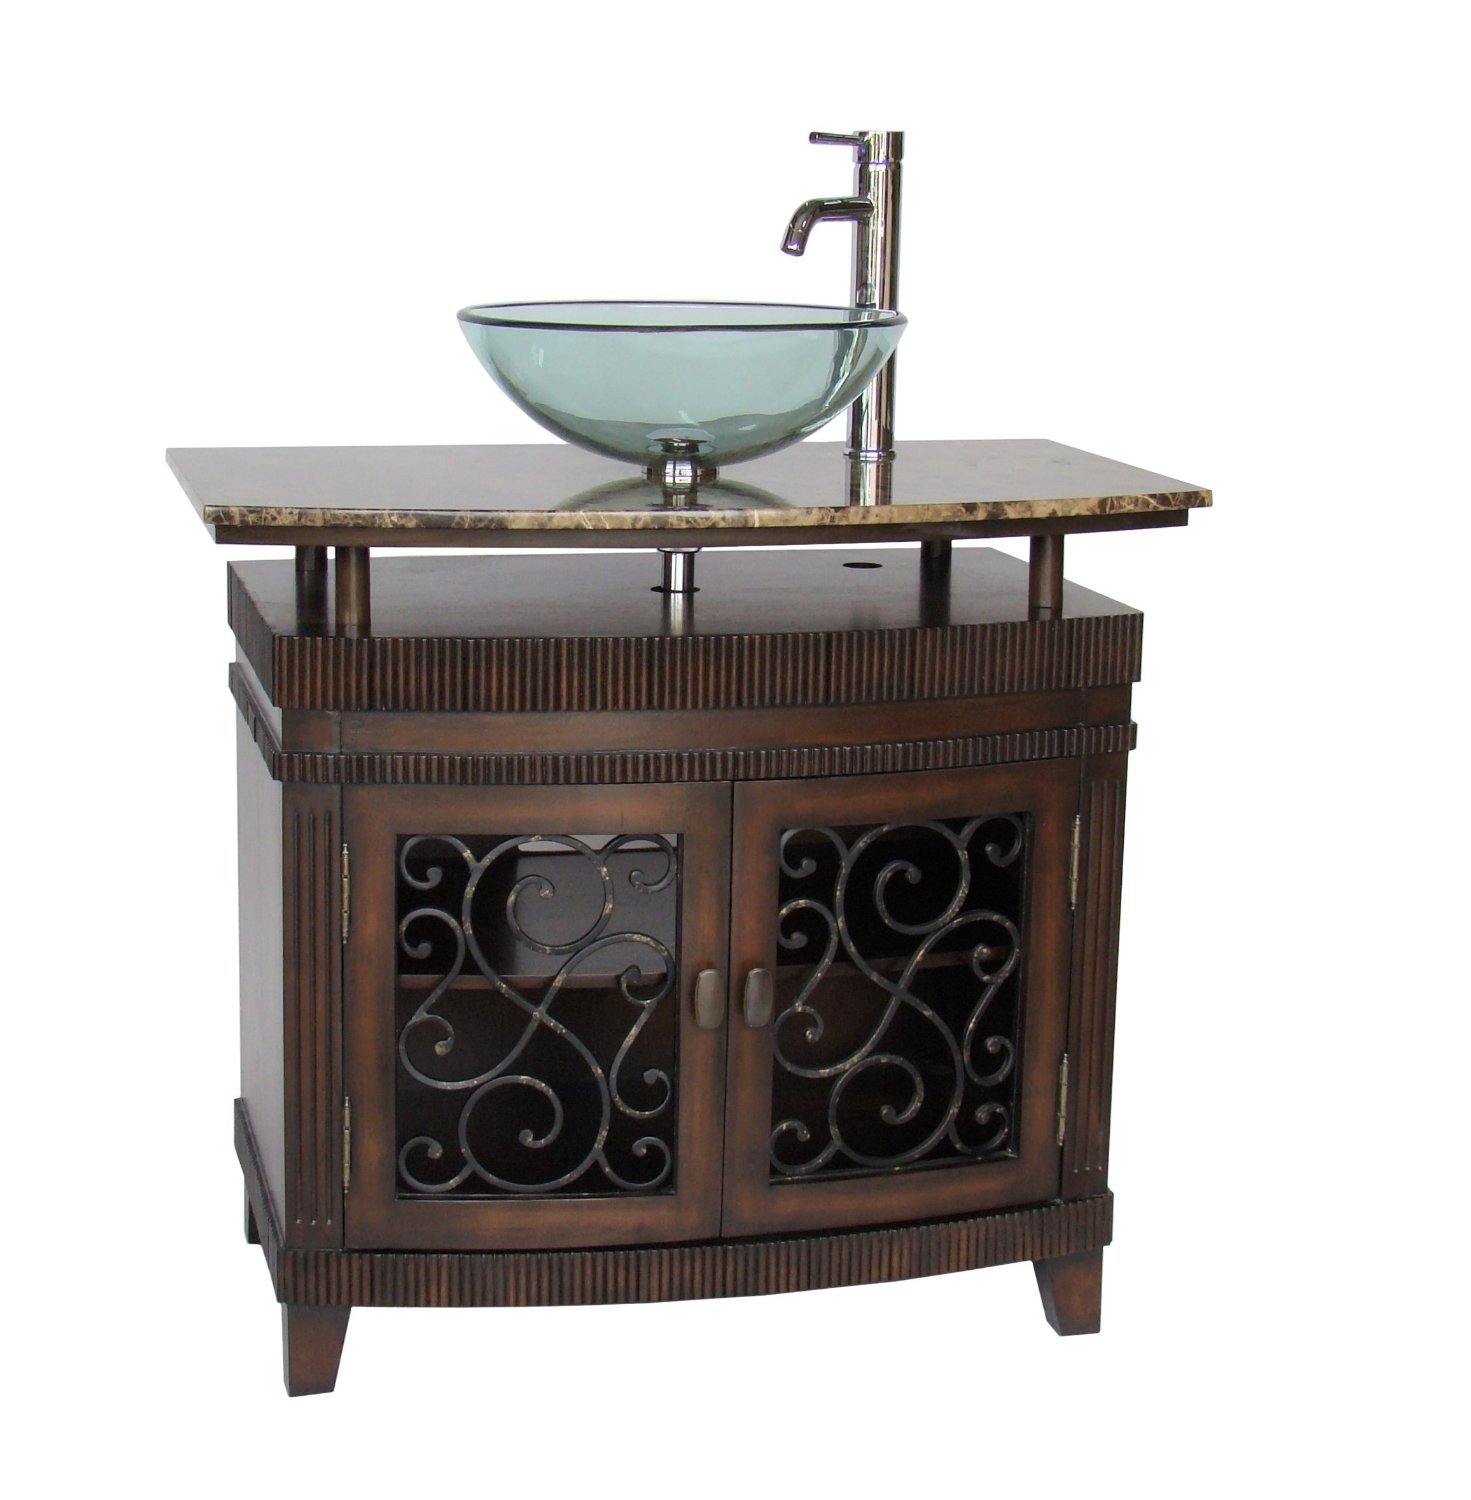 Bathroom sink and vanity combo - Adelina 36 Inch Vessel Sink Bathroom Vanity Mahogany Finish